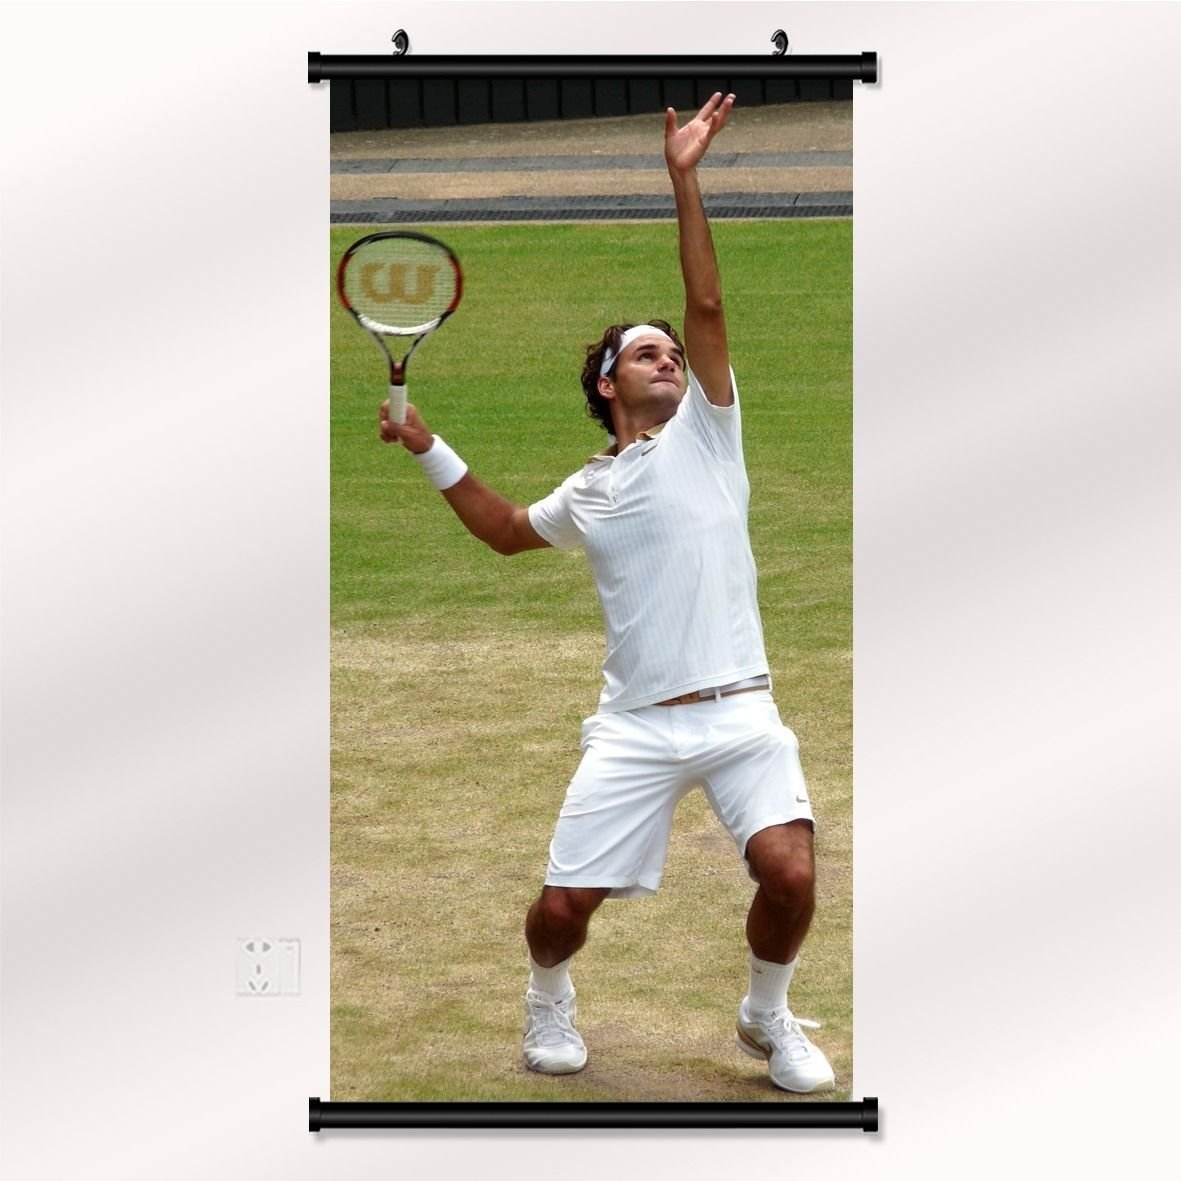 Roger Federer Tennis Star Wall Print POSTER Decor 32x24